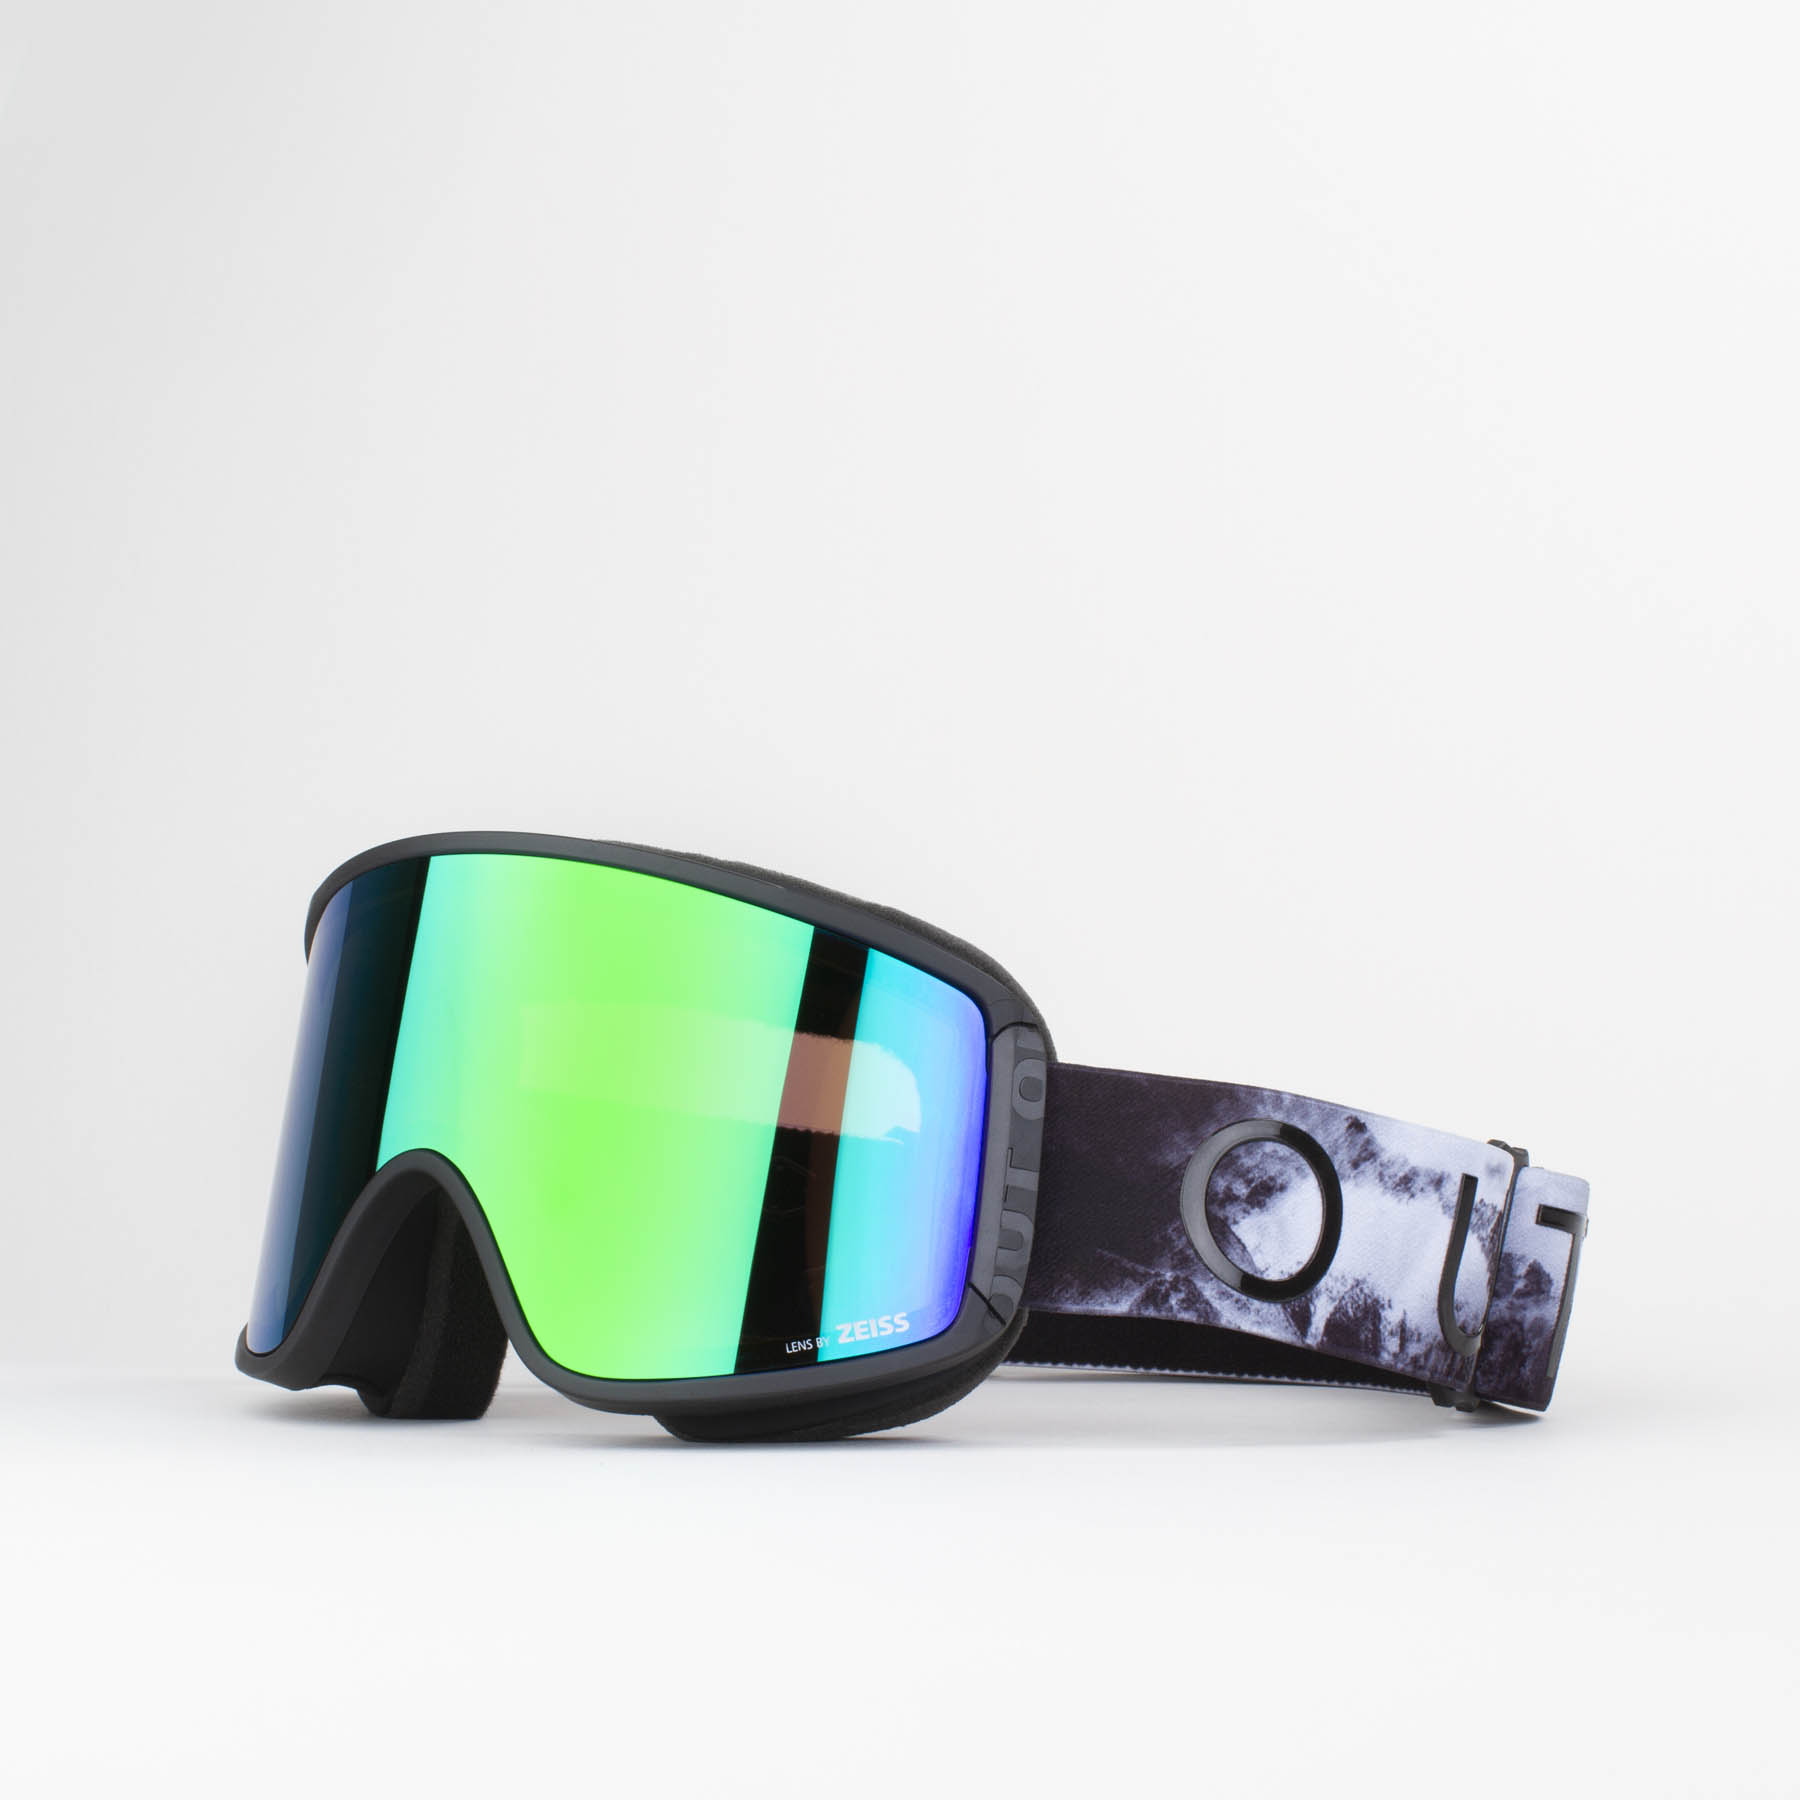 Shift Tempesta Green MCI goggle